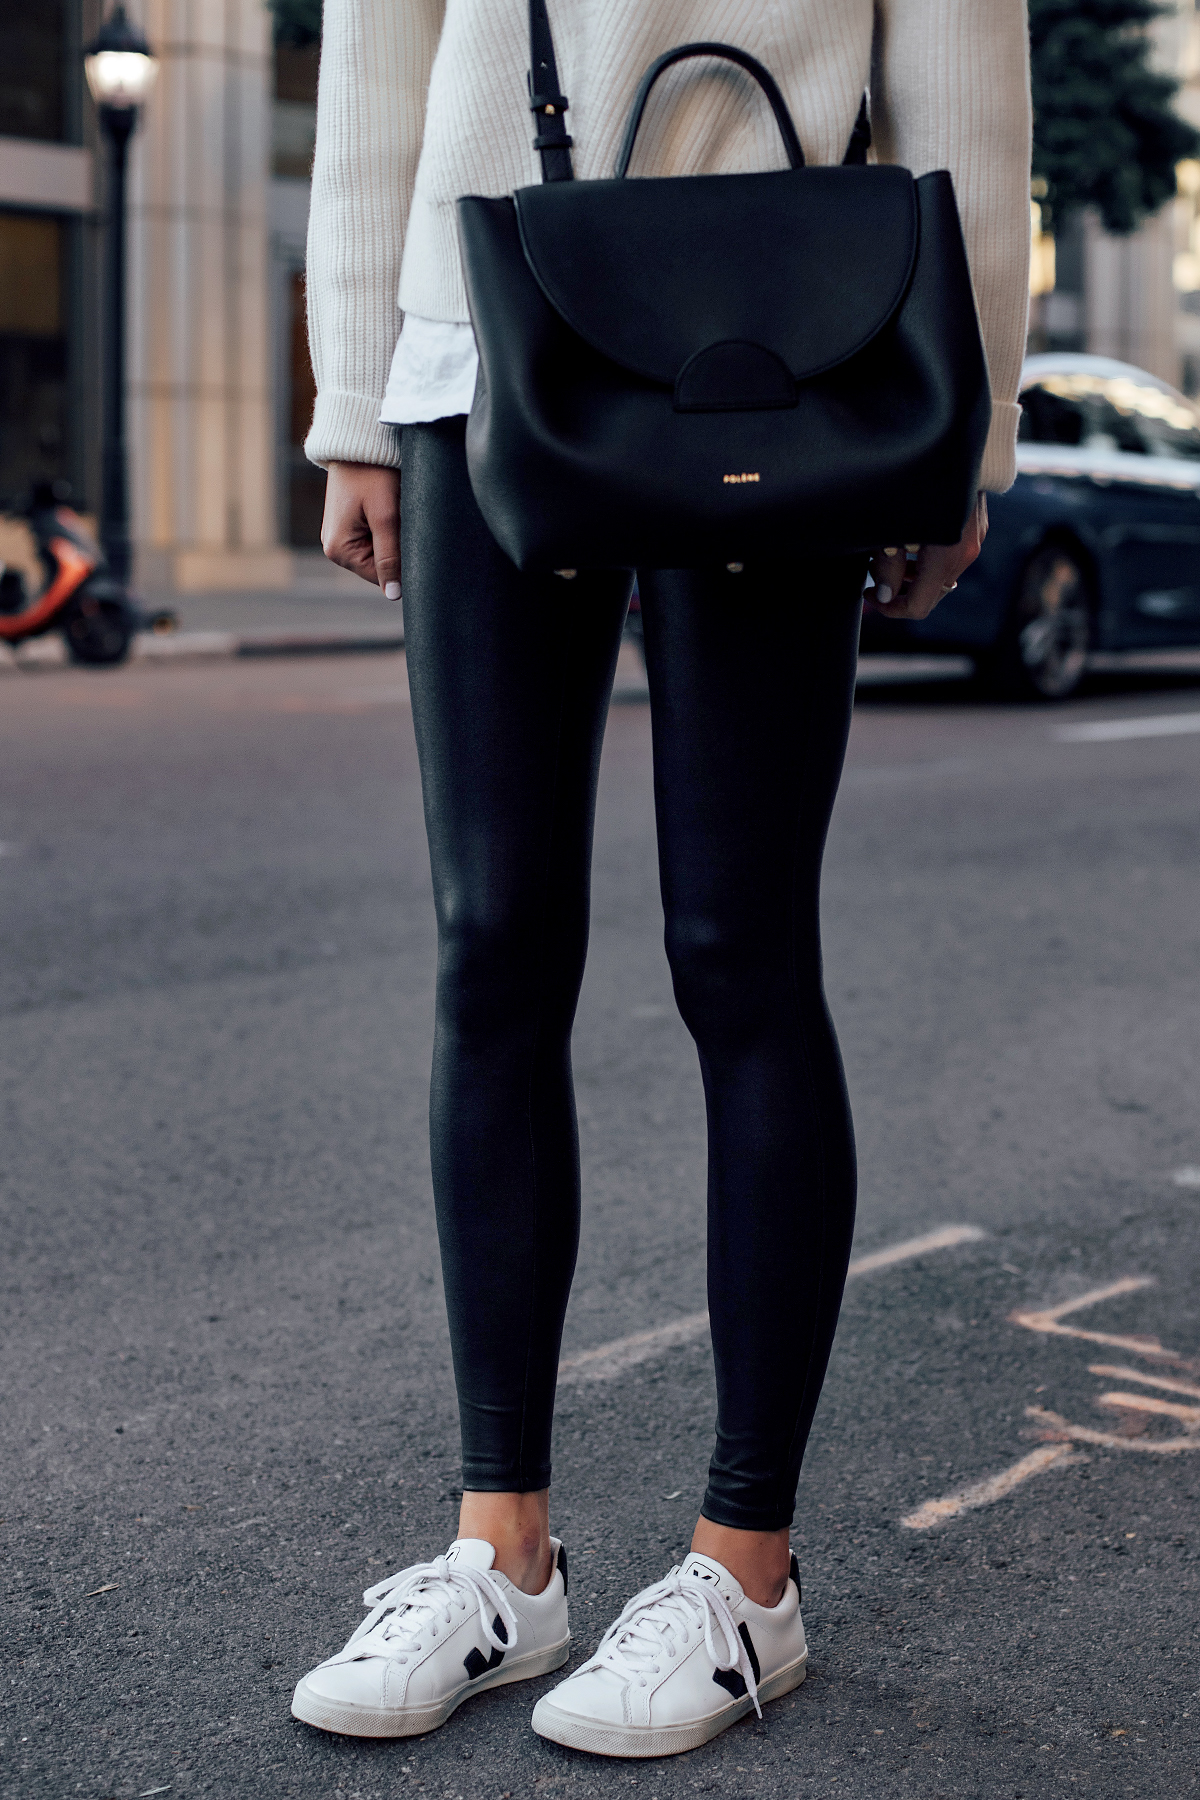 Woman Wearing Spanx Black Faux Leather Leggings Veja Espalar White Sneakers Polene Paris Black Number One Handbag Fashion Jackson San Diego Fashion Blogger Street Style